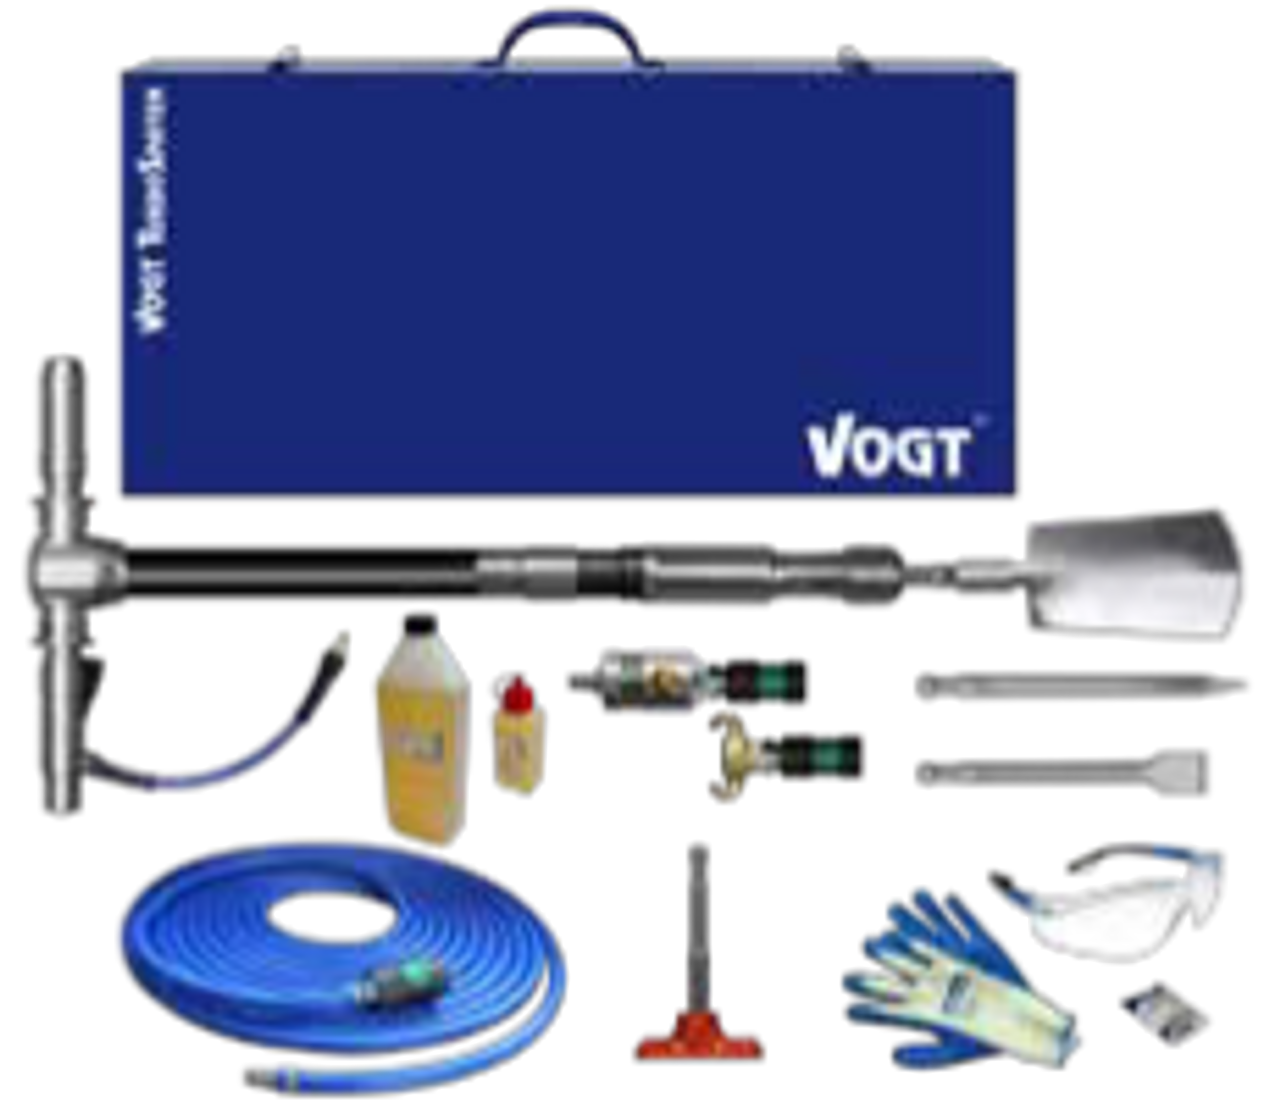 """Tool Kit includes: - 1 VOGT TurboSpade VTS 50-80 with 18 mm chisel input length without tool 80 cm (31,5"""")  Weight 6,0 kg (13,2 lb) Percussion rate 1960/min Air consumption 255 l/min (9.2 cfm) at 6.0 bar (87 psi) Operating pressure 3.0 - 6.0 bar (44 - 87 psi)   - 1 Digging spade w=140 mm (5.5"""") (GA140.18H) - 1 Moil point (M100.18) - 1 Wide chisel w=40 mm (1.6"""") (M340.18) - 1 Tamping plate 120/120 mm (4,72/4,72"""") (V1120.18H) - 1 Adapter 3/4"""" to standard connection (Z200) - 1 Precision in-line oiler (Z300) - 1 Air hose 9x14 mm, l=10 m (10.94 yd) (Z110) - 1 VOGT Special-Oil 0.1 l (Z510) - 1 VOGT Special-Oil 1.0 l (Z500) - 1 Working gloves (870005) - 1 Safety glasses (870007) - 1 Ear plugs (870003) - Metal transport case (0XX035-90) - 1 Operating manual"""